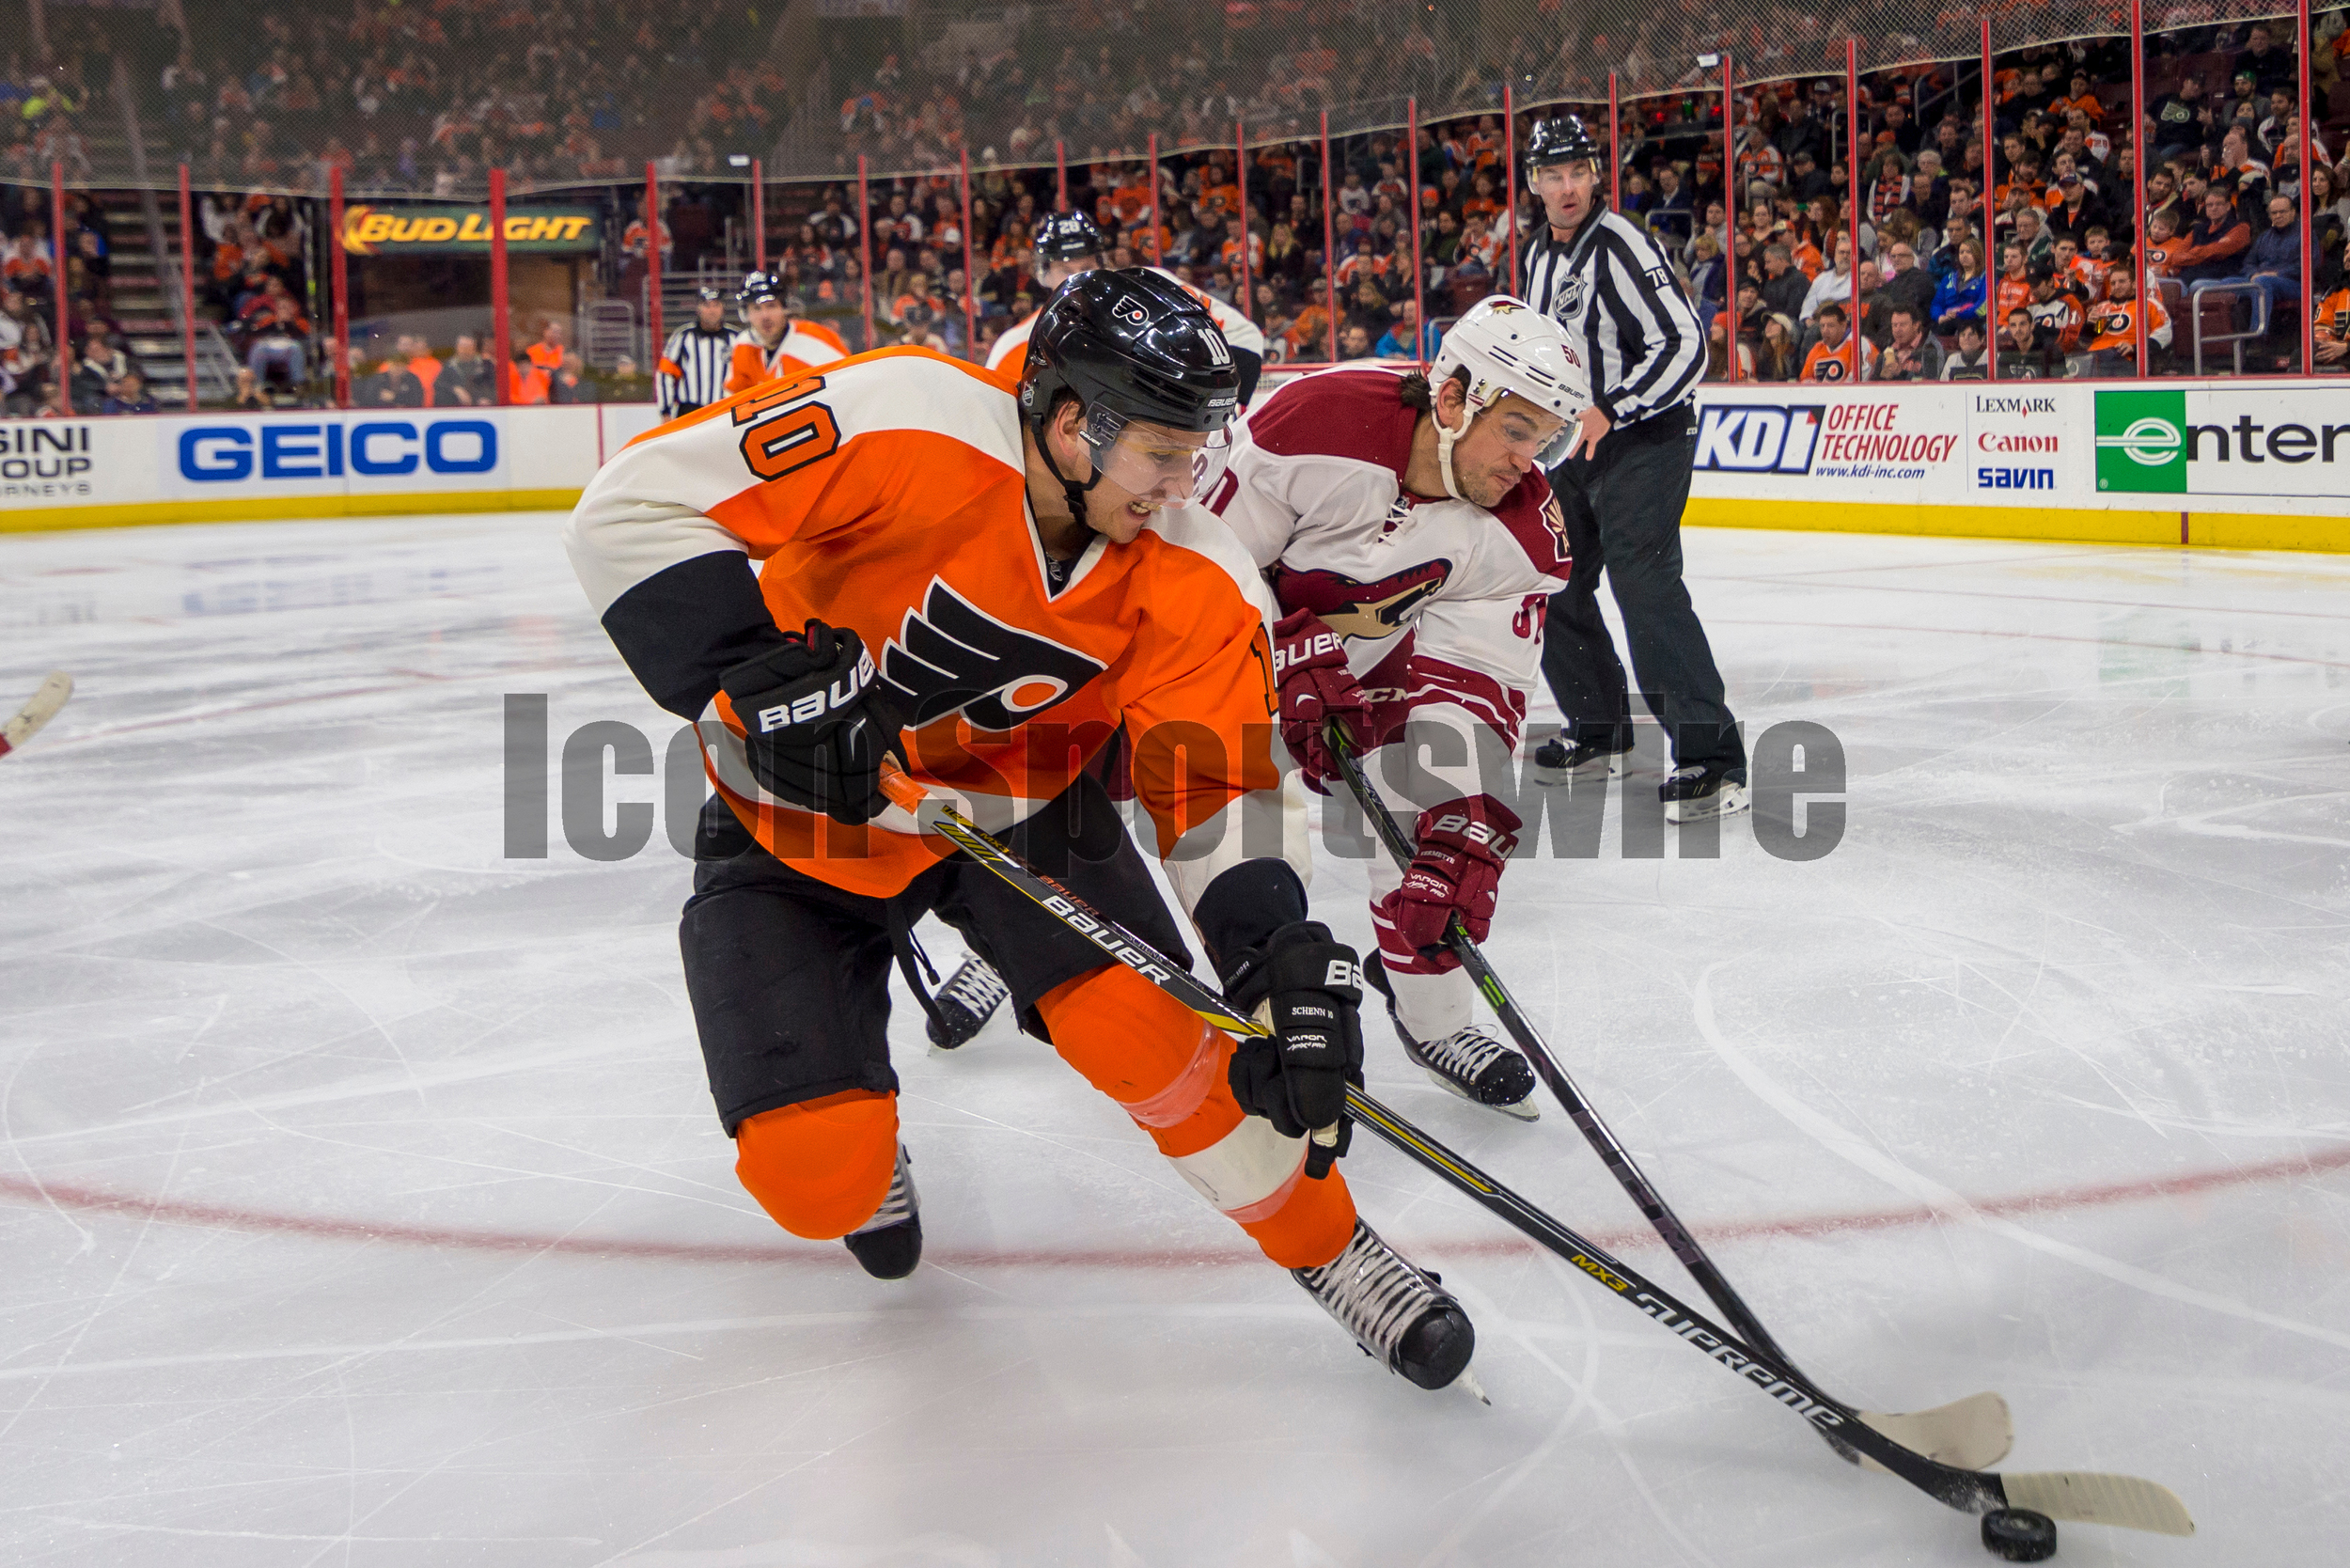 27 Jan 2015: Philadelphia Flyers center Brayden Schenn (10) tries to keep the puck away from his defender during the NHL game between the Arizona Coyotes and the Philadelphia Flyers played at the Wells Fargo Center in Philadelphia, PA